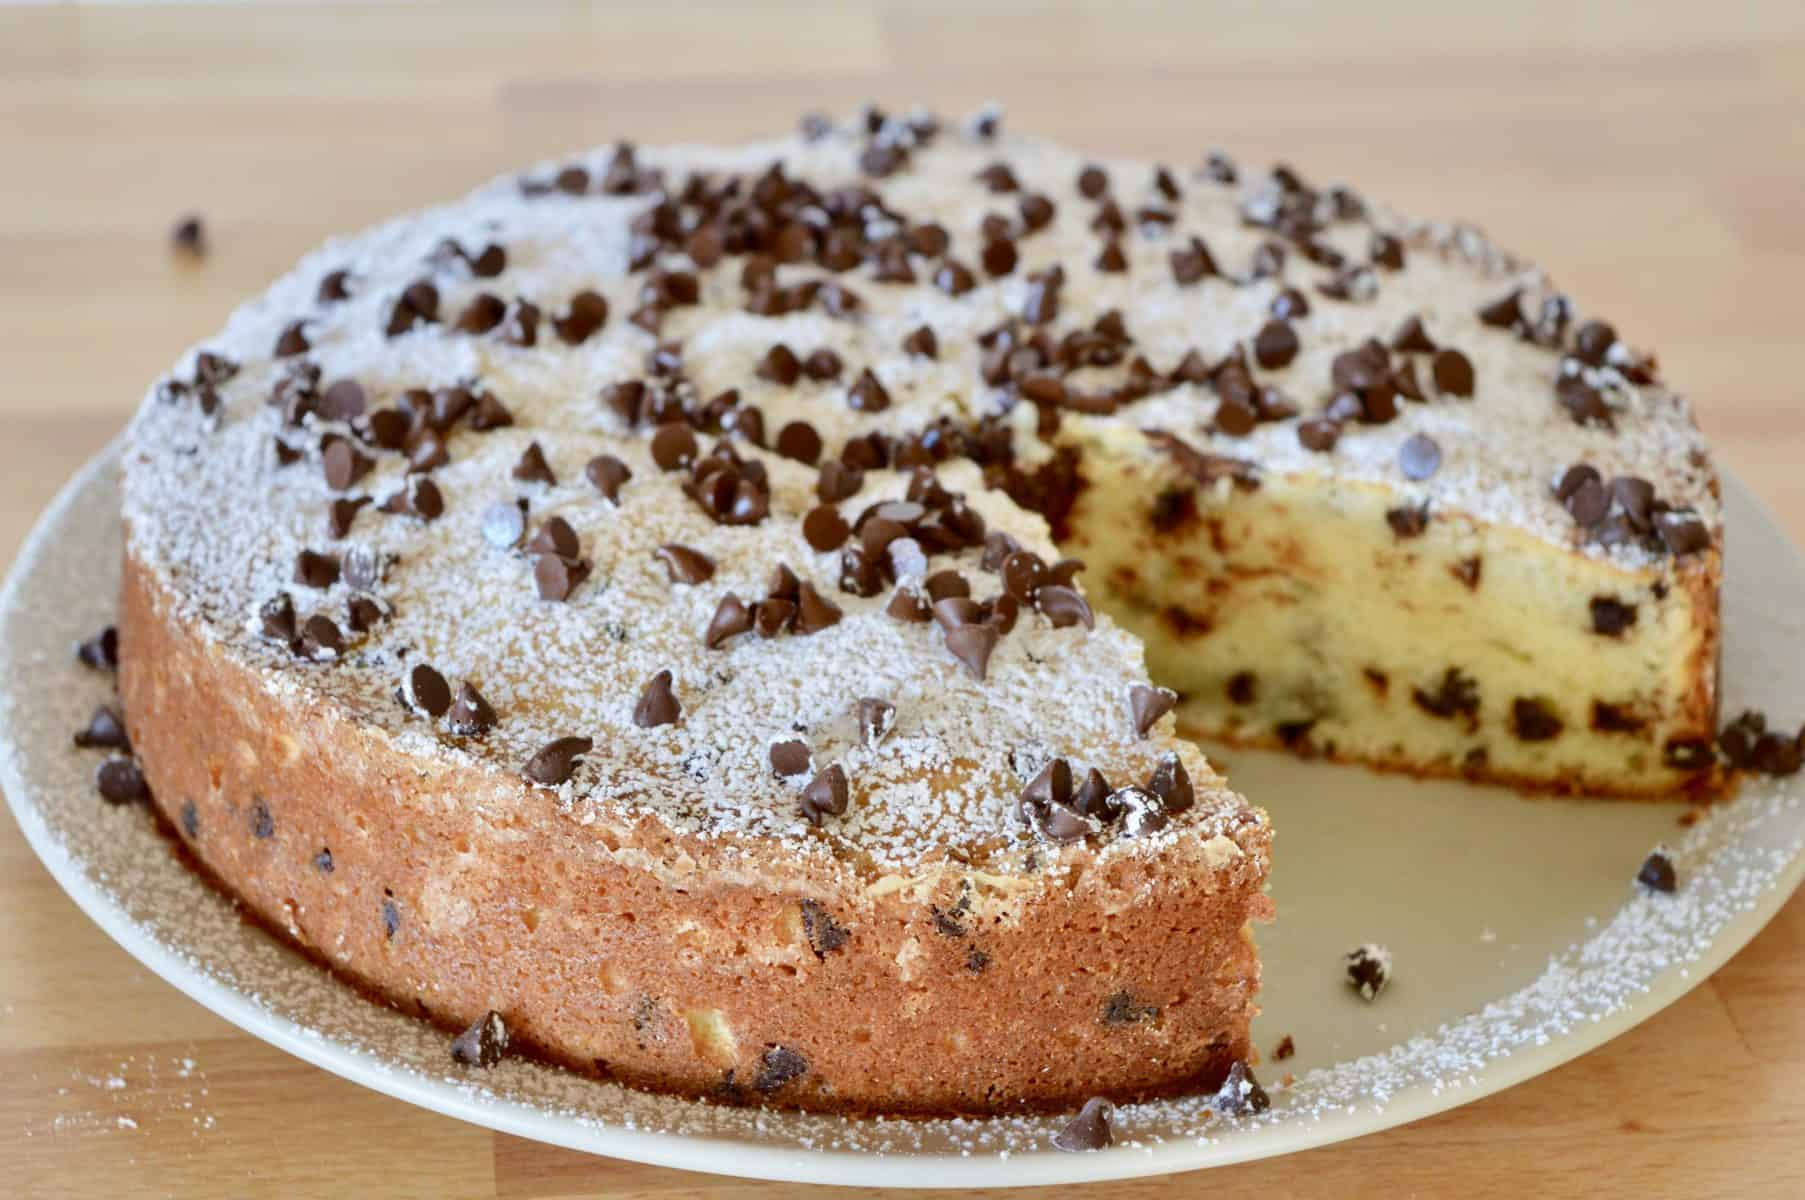 Chocolate Chip Ricotta Cake with a slice missing from it.